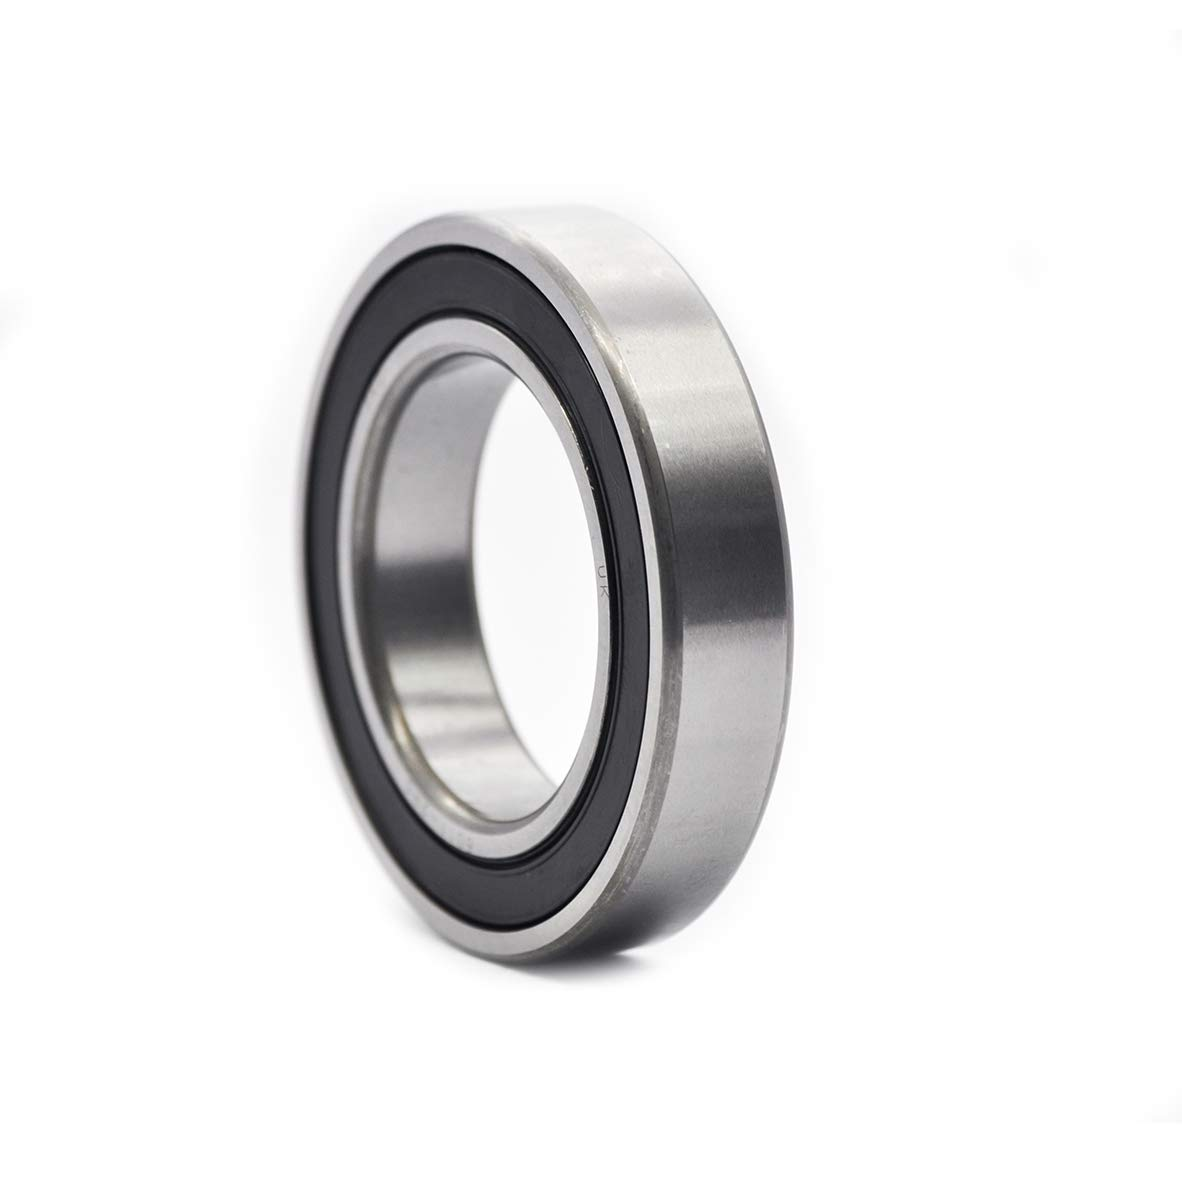 FKG 6011-2RS 55x90x189mm Deep Groove Ball Bearing Double Rubber Seal Bearings Pre-Lubricated